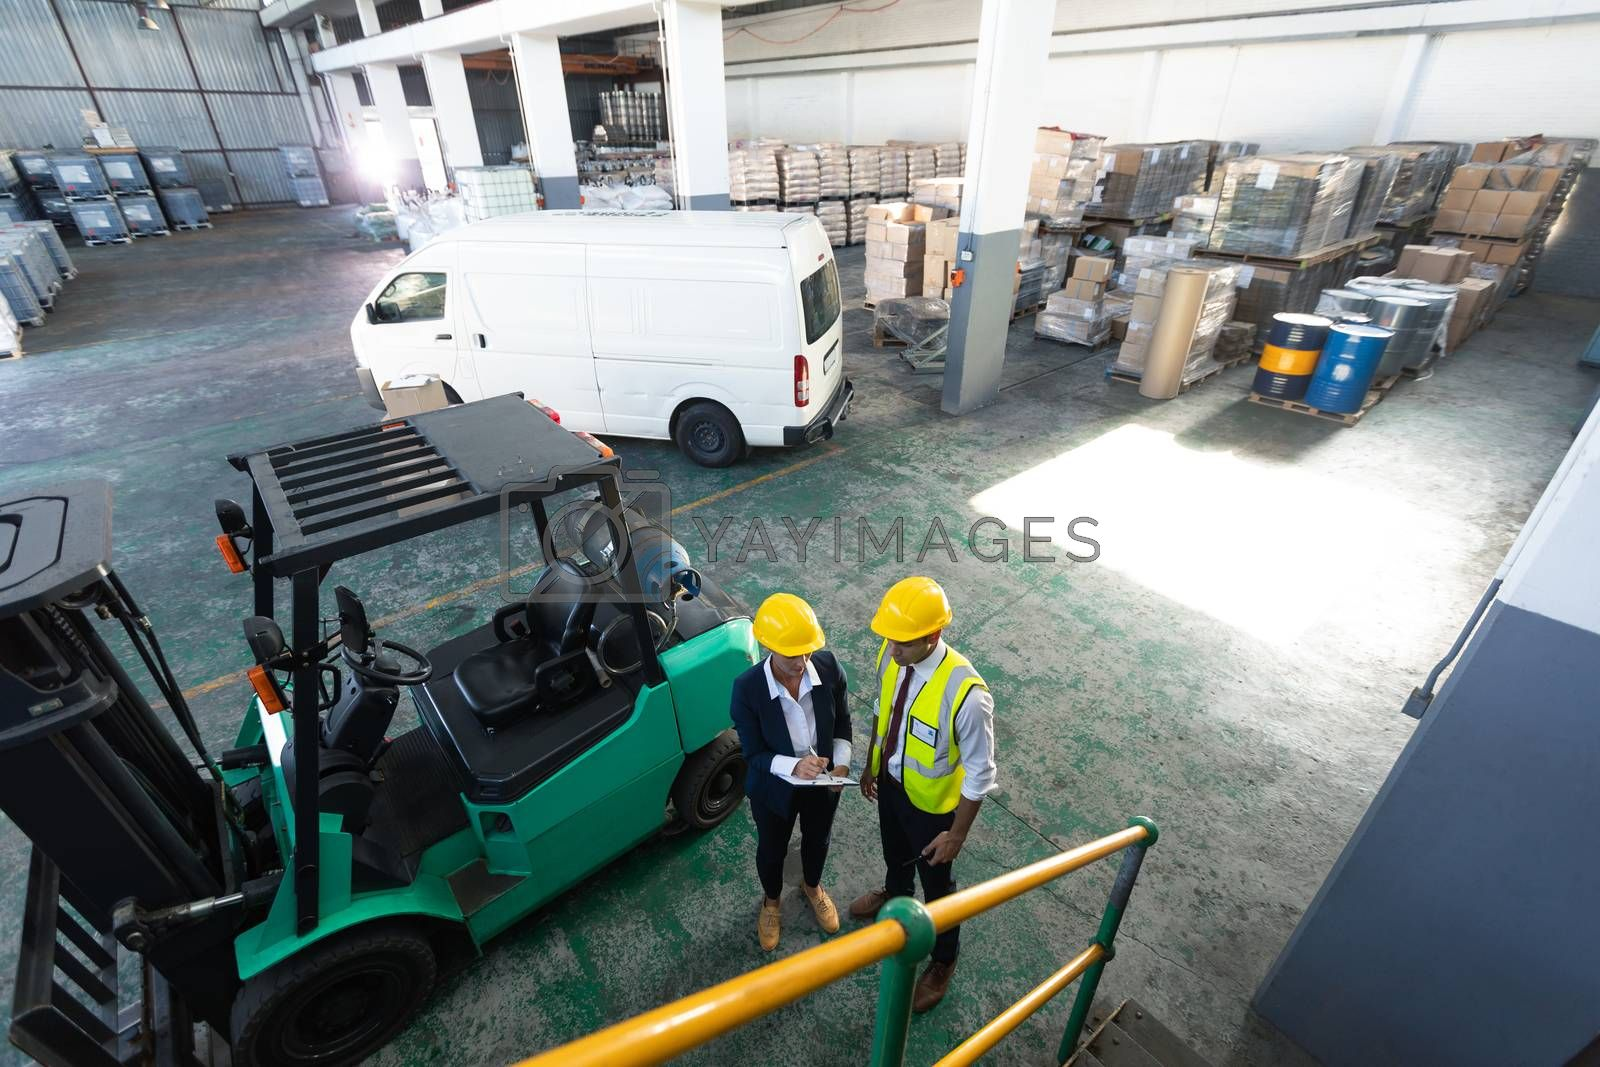 High angle view of Caucasian female manager and male supervisor discussing over clipboard in warehouse. This is a freight transportation and distribution warehouse. Industrial and industrial workers concept